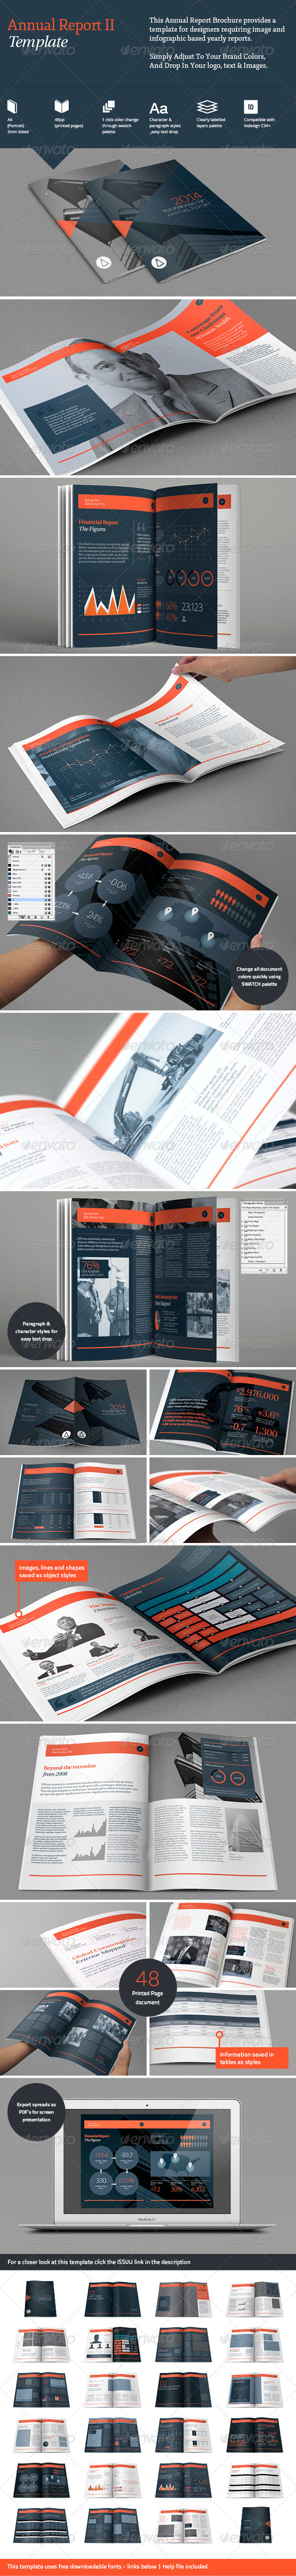 annual-report-ii-brochure